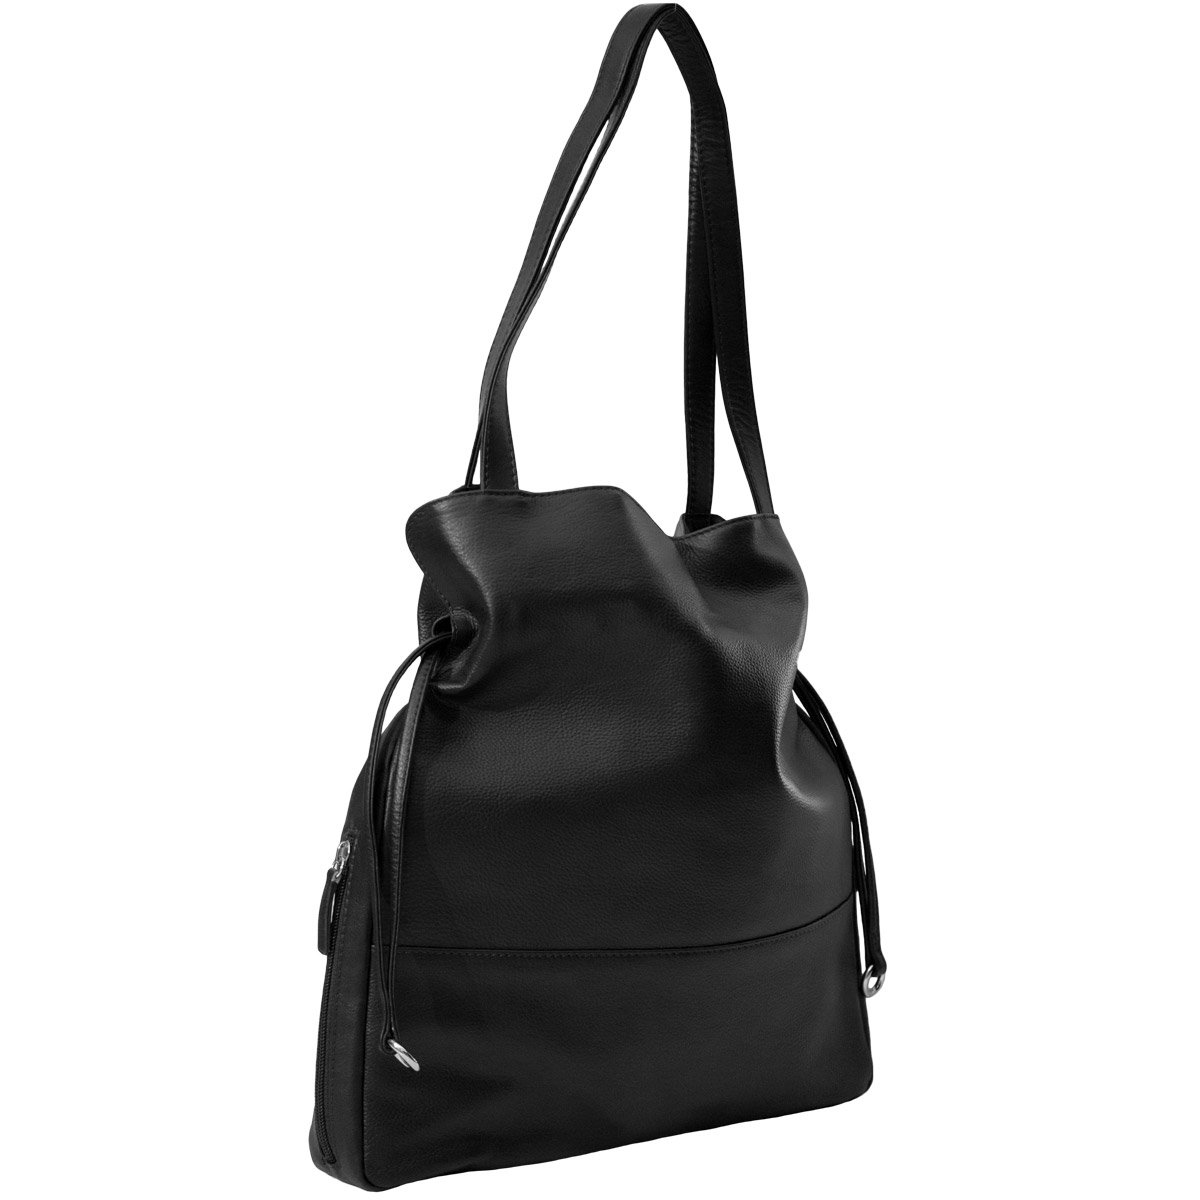 CTM Women's Leather Tote Handbag with Cosmetic Case, Black